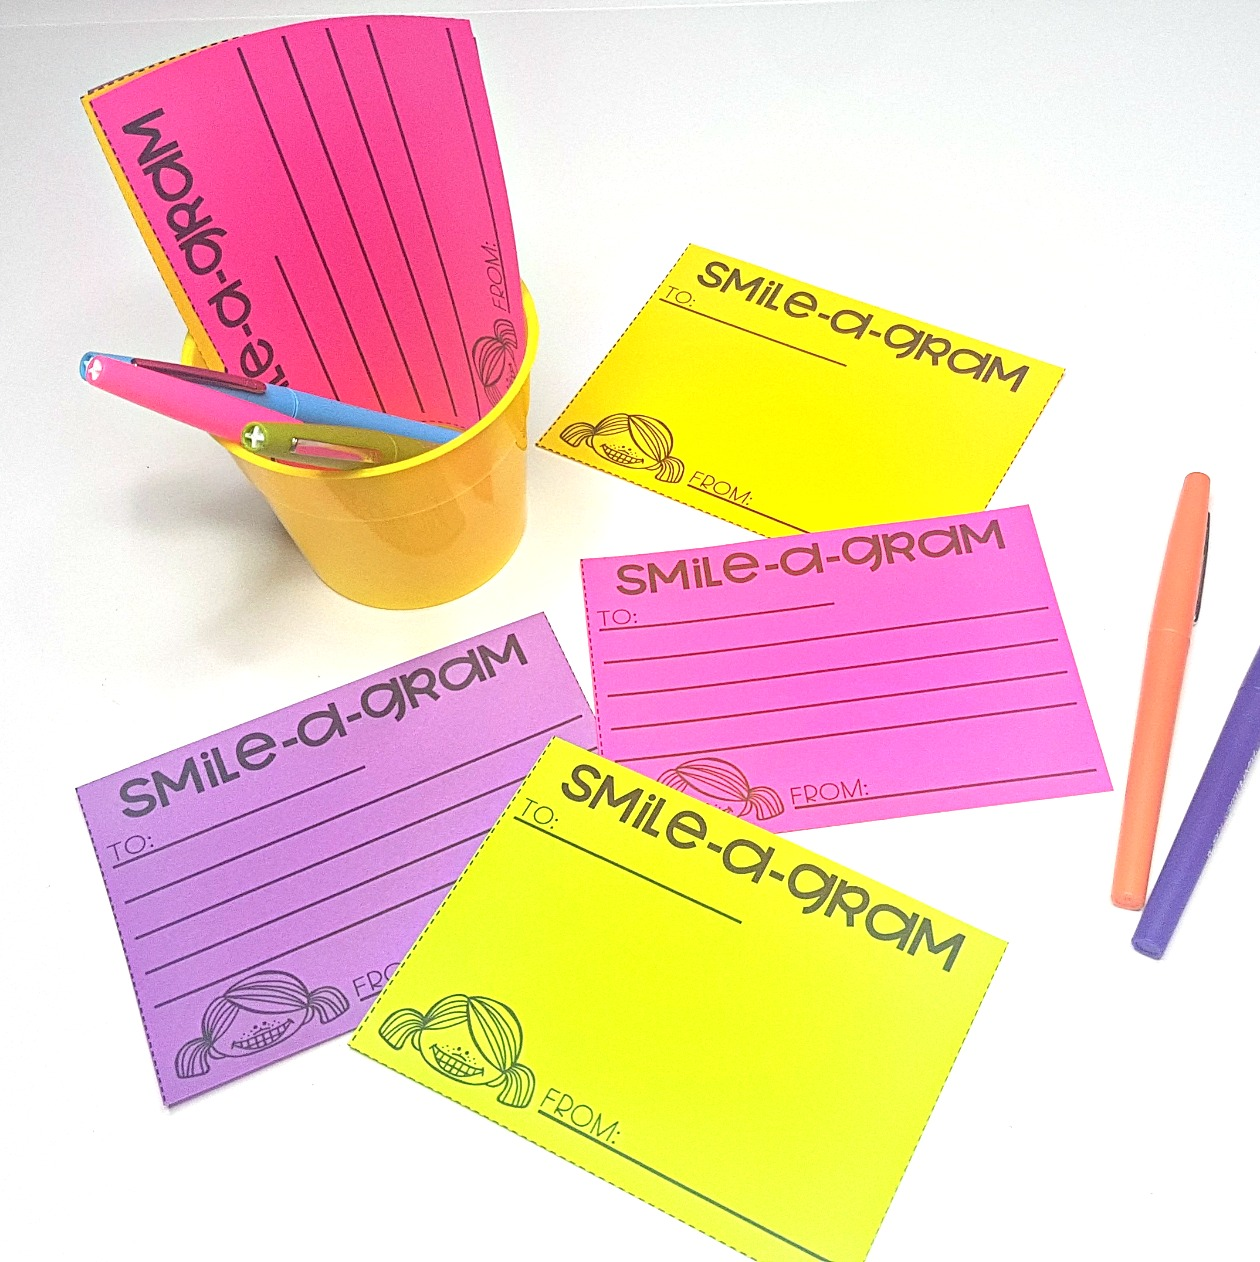 kindness books and videos - smile-a-gram kindness note card on table with pens